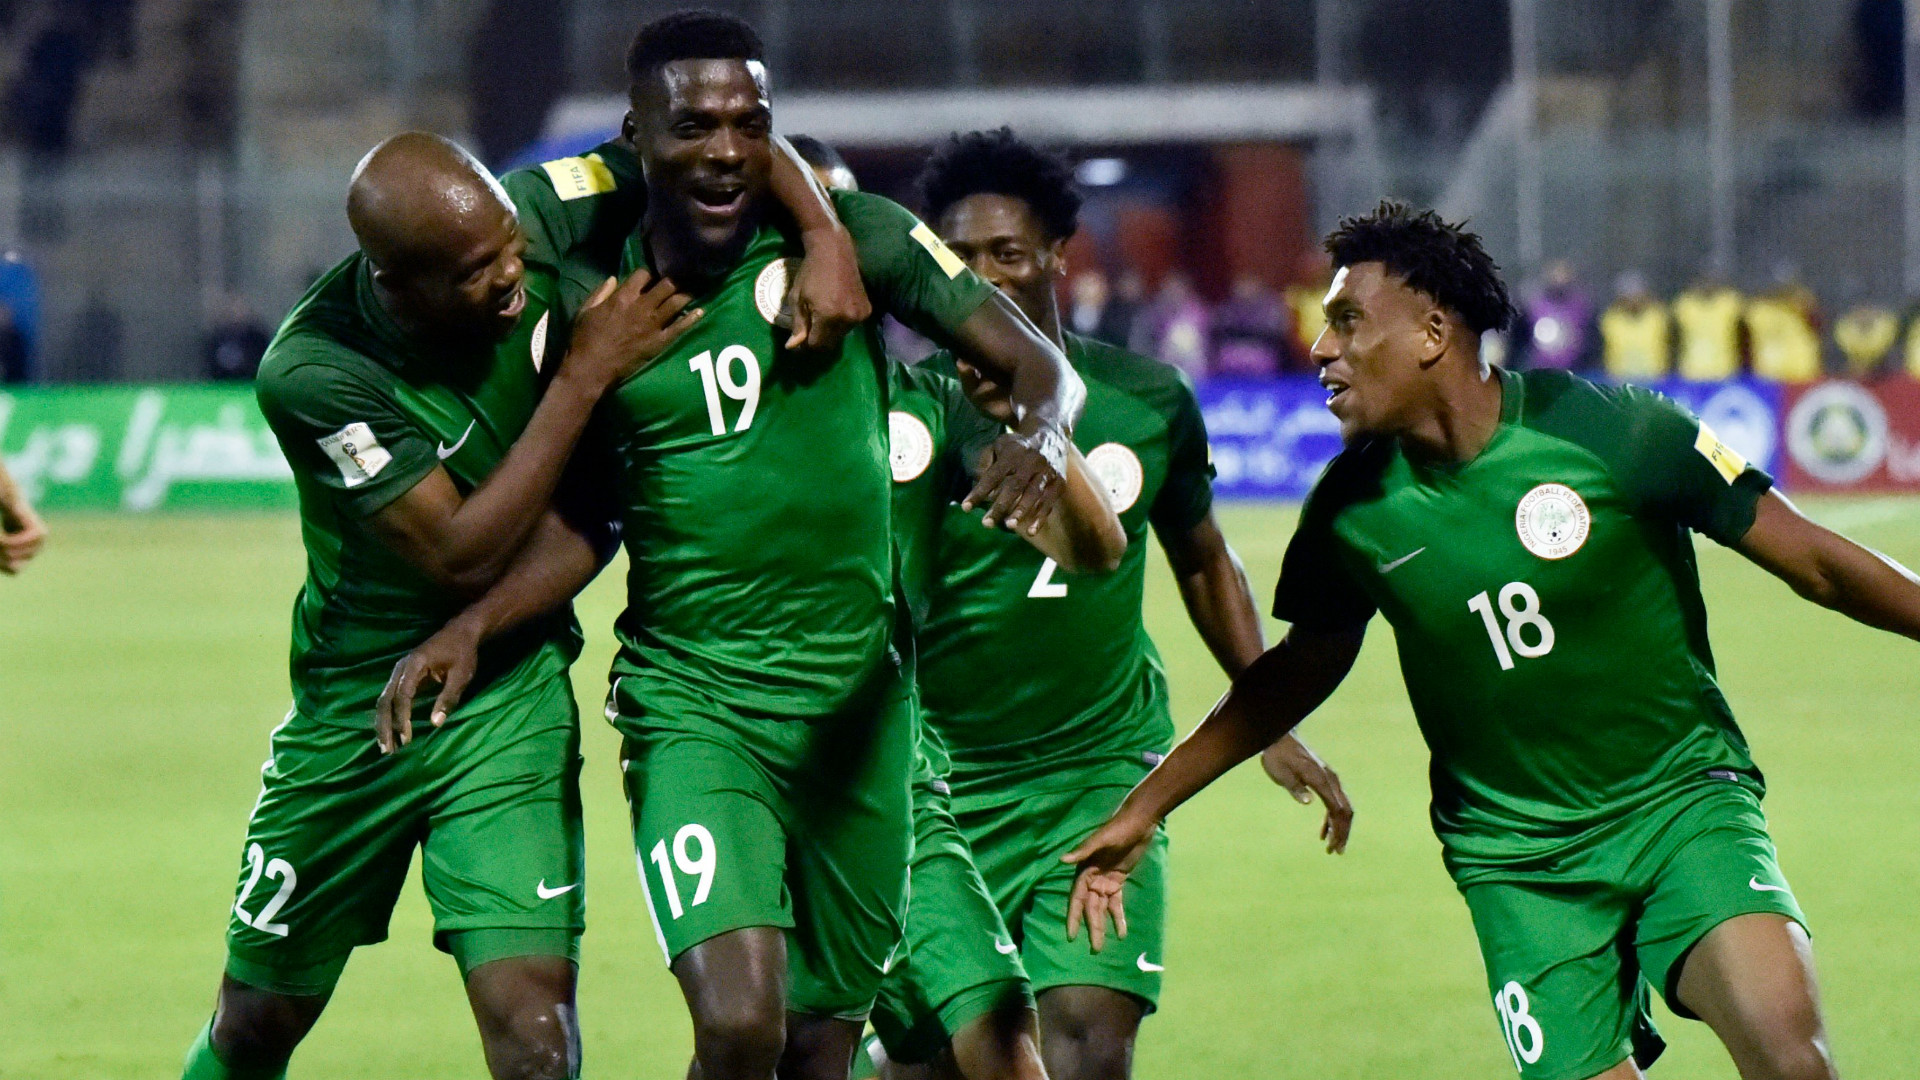 Efe Ambrose backs Eagles to soar over Argentina